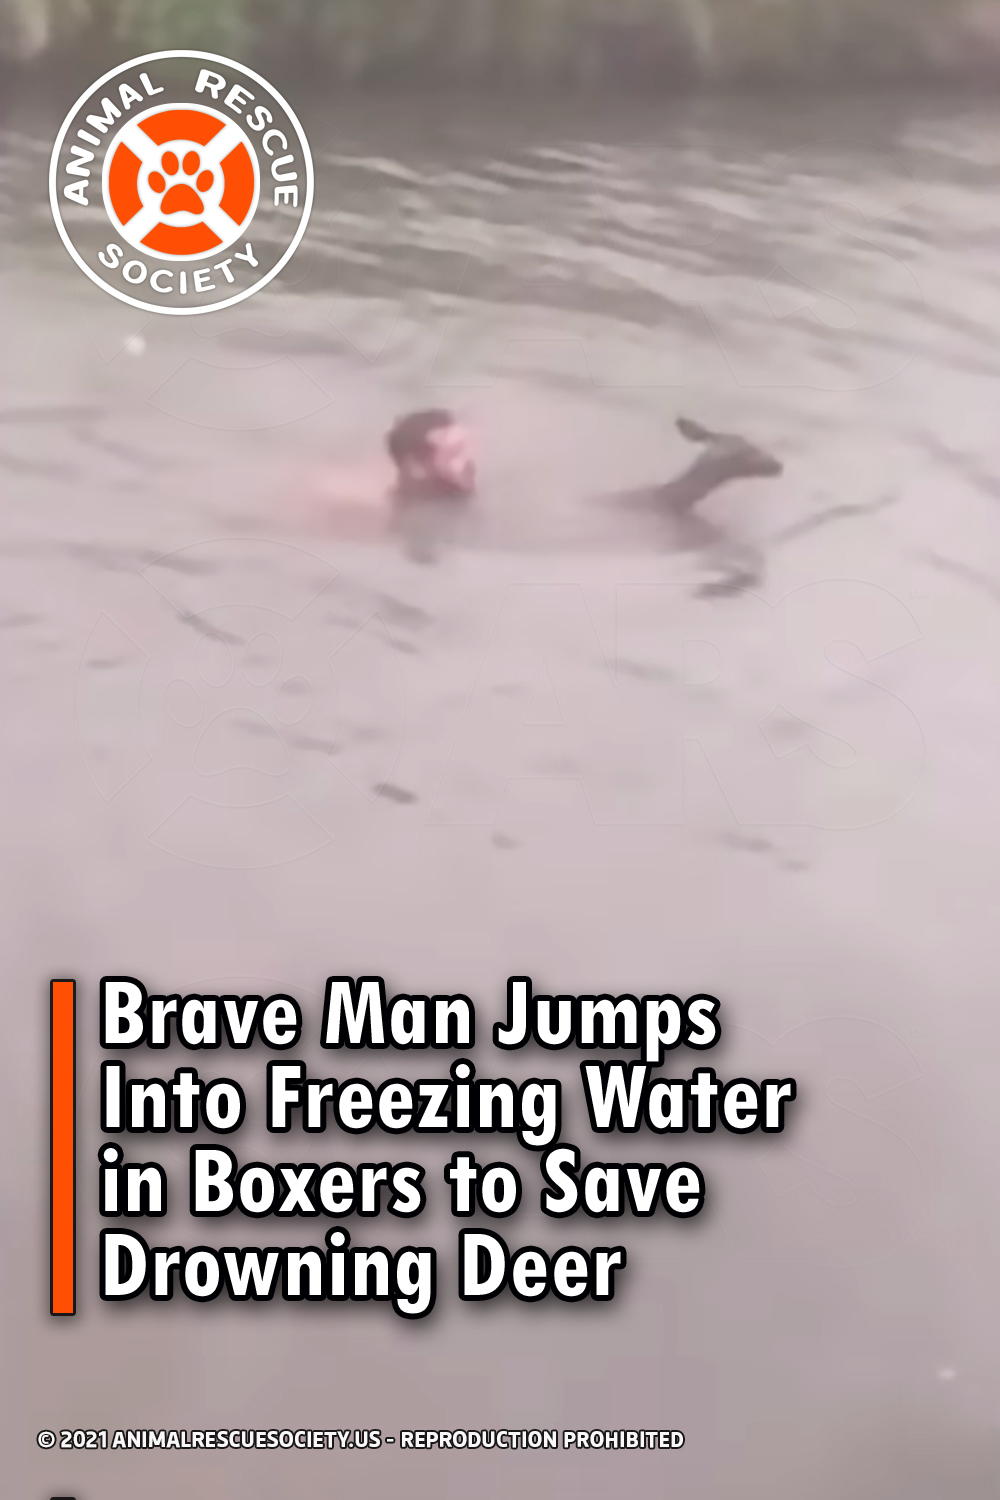 Brave Man Jumps Into Freezing Water in Boxers to Save Drowning Deer